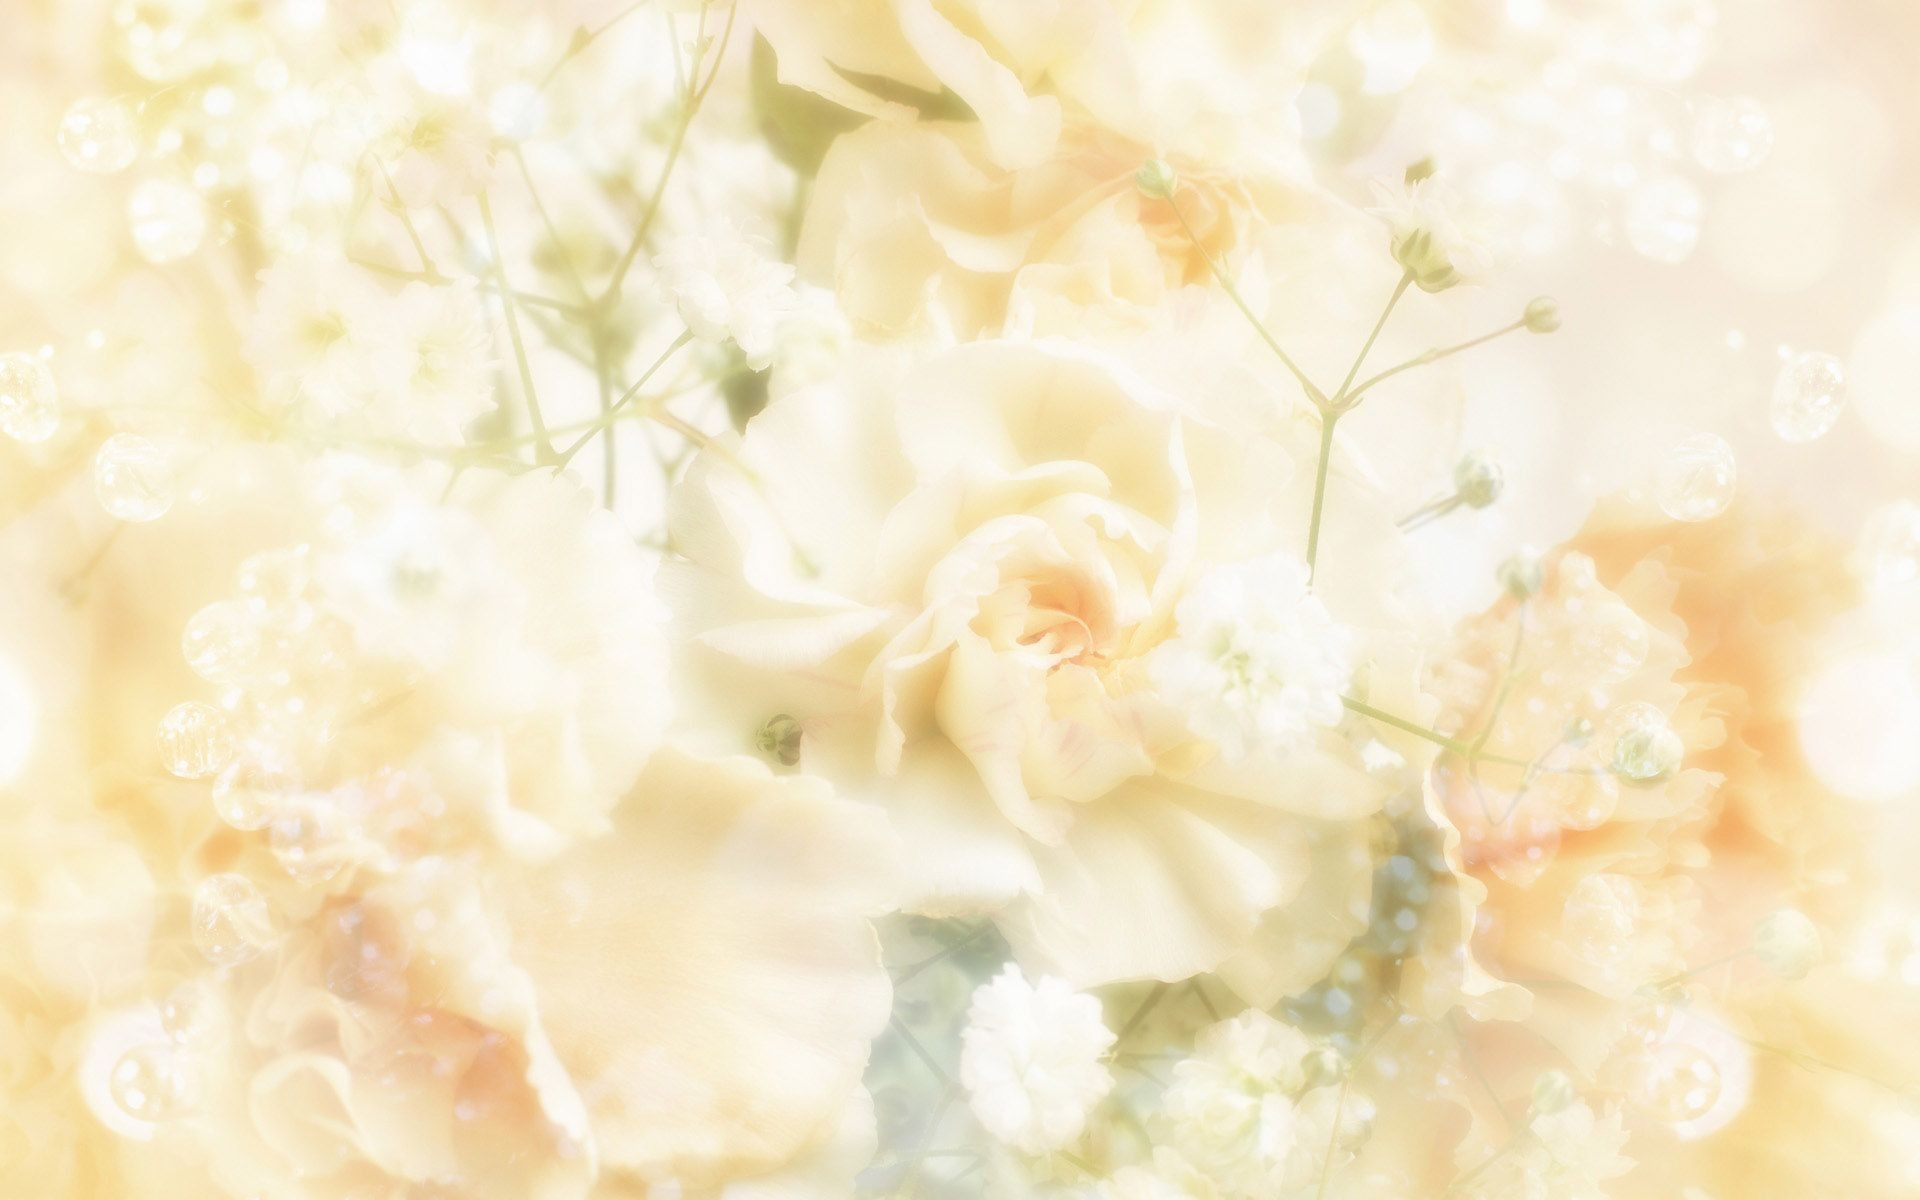 Wedding Background Images 183 ① Download Free Beautiful Hd